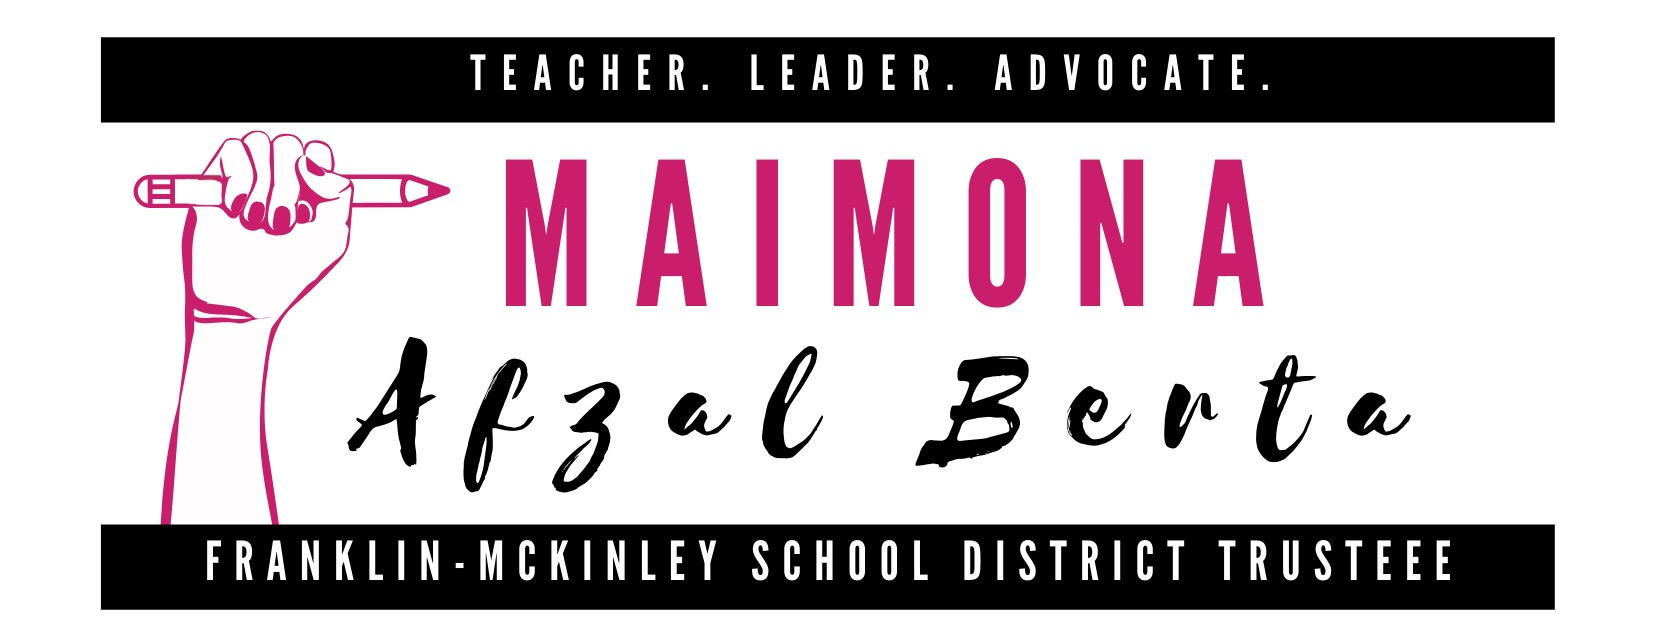 Maimona Afzal Berta for School Board 2020: Maimona Afzal Berta for School Board 2020